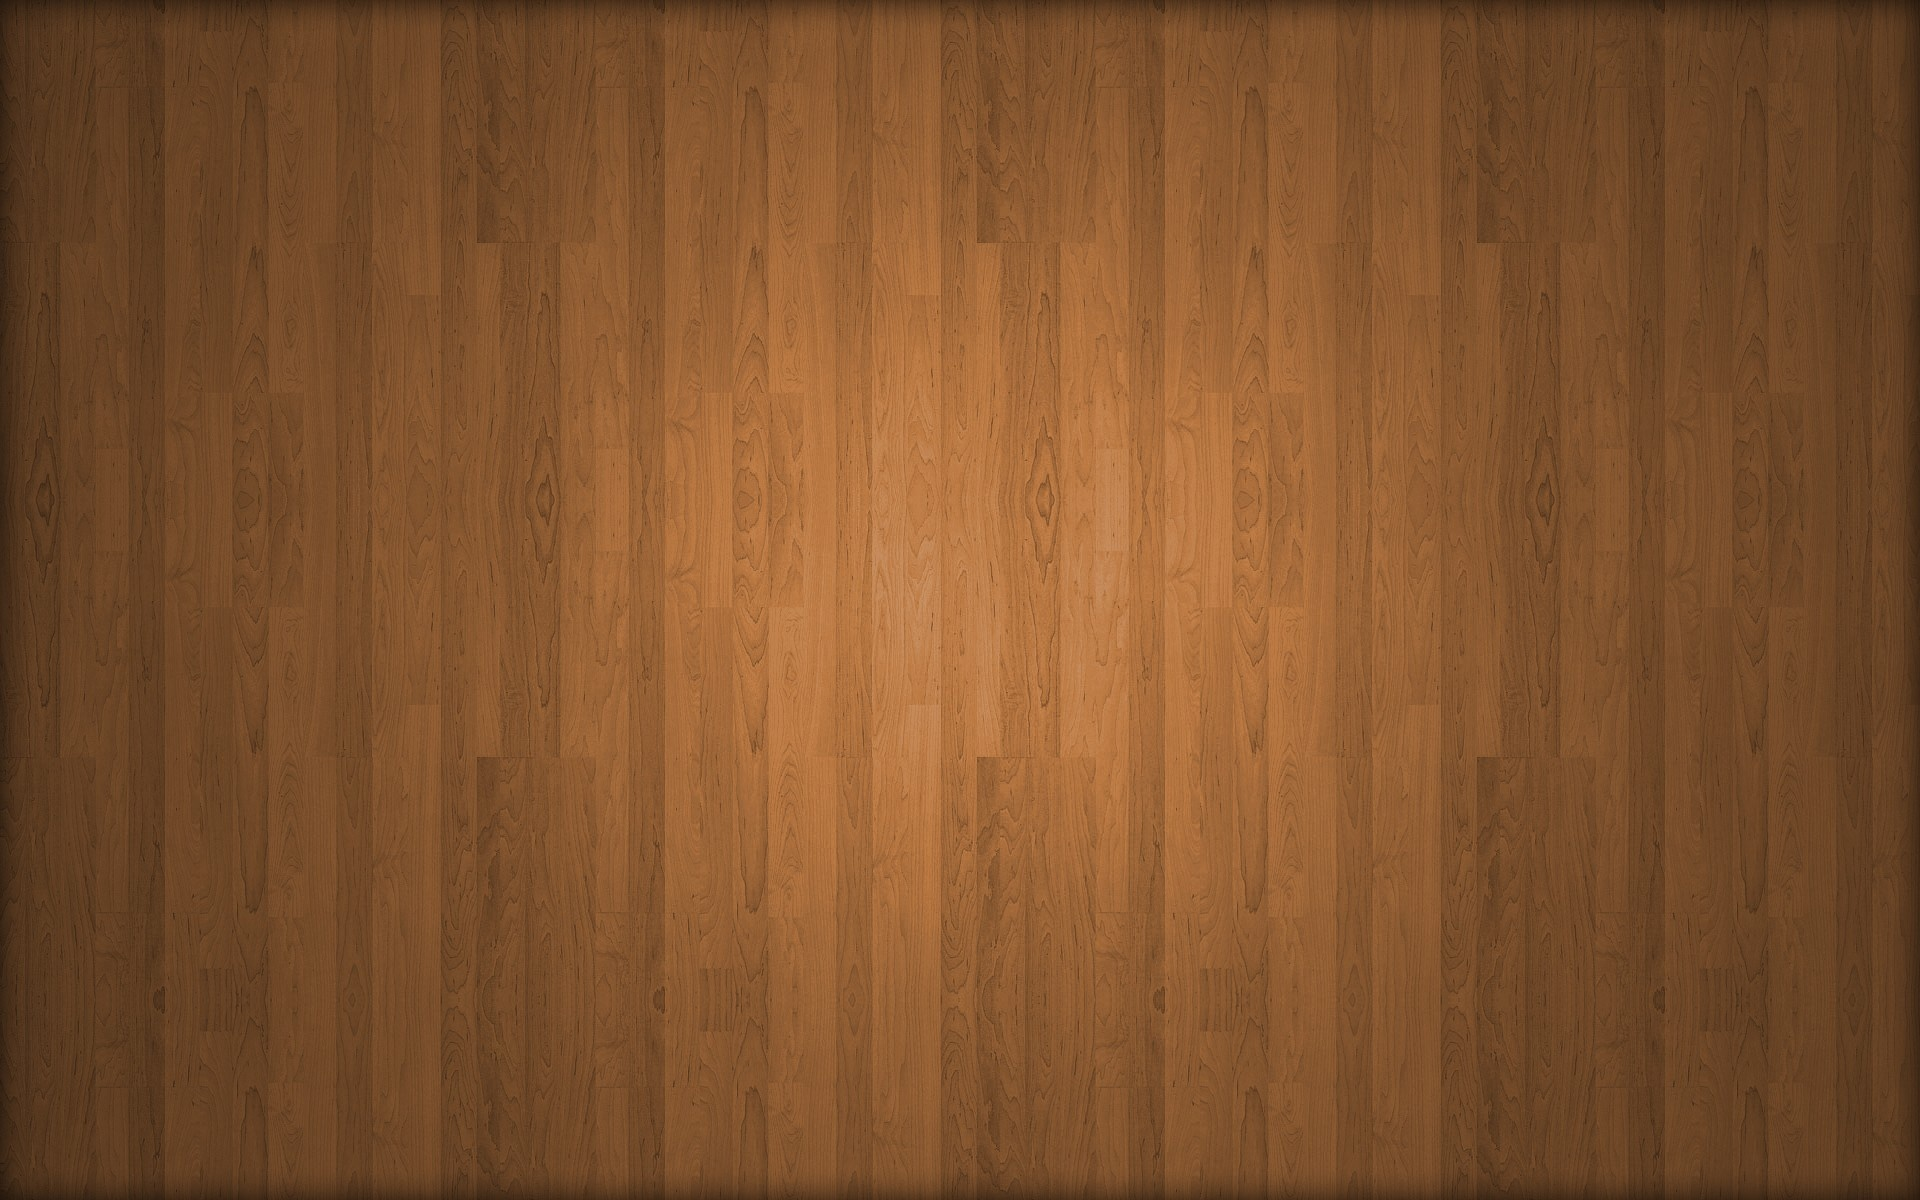 Wood wall clipart free jpg freeuse download Wood Wall Clip Art   Clipart Free Download - Clip Art Library jpg freeuse download